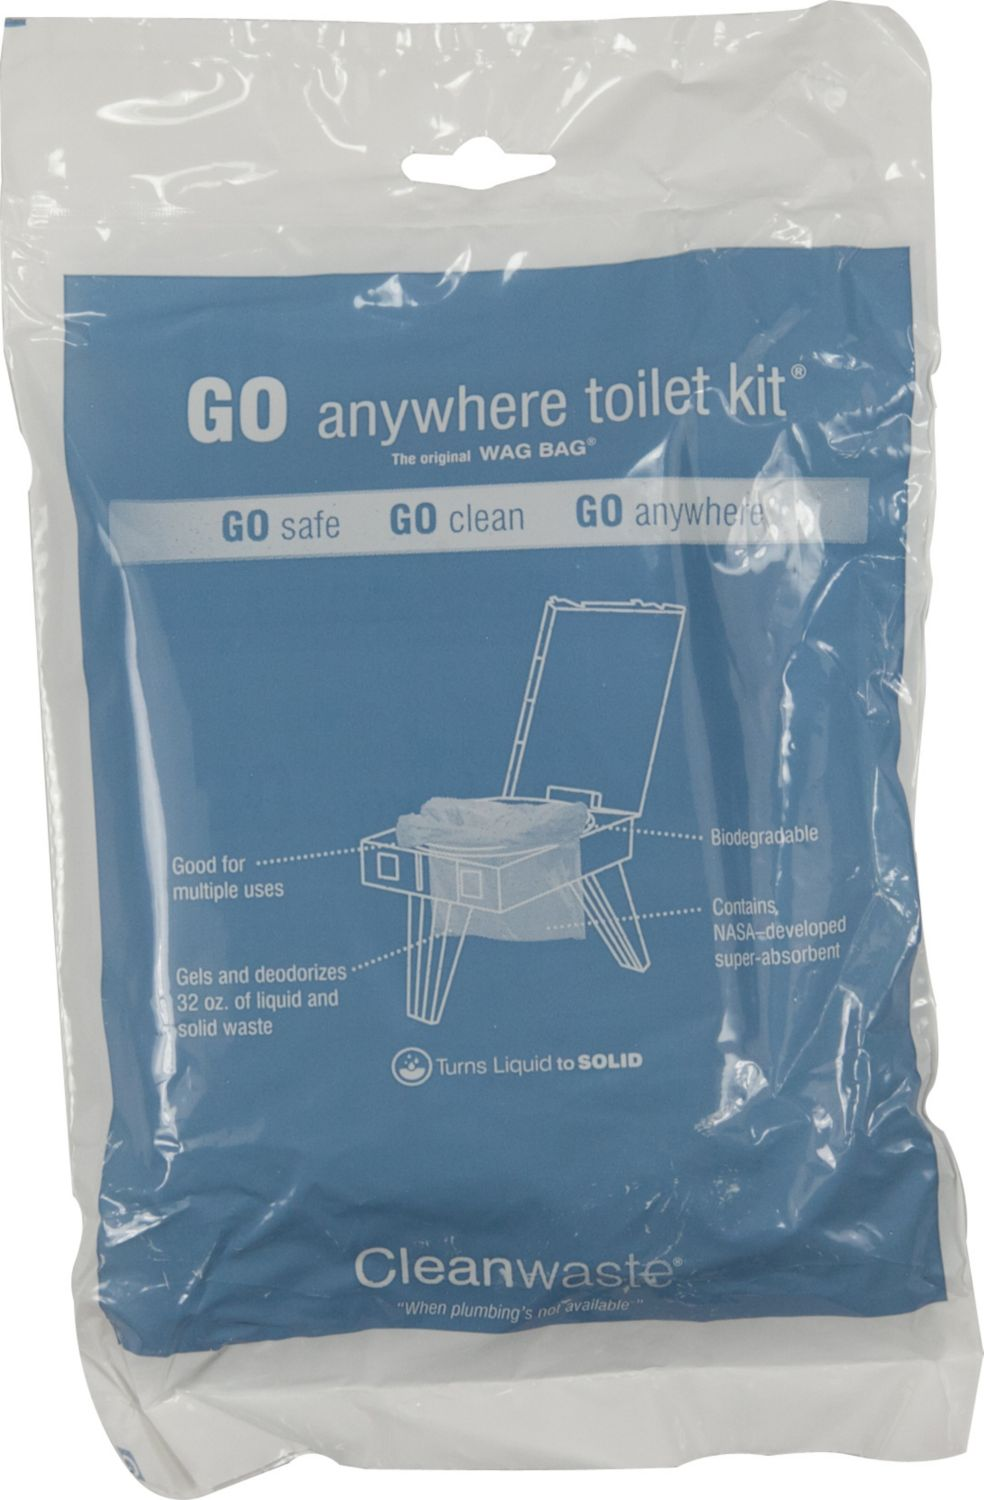 Cleanwaste Go Anywhere Toilet Kit 12 Pack Wag Bag